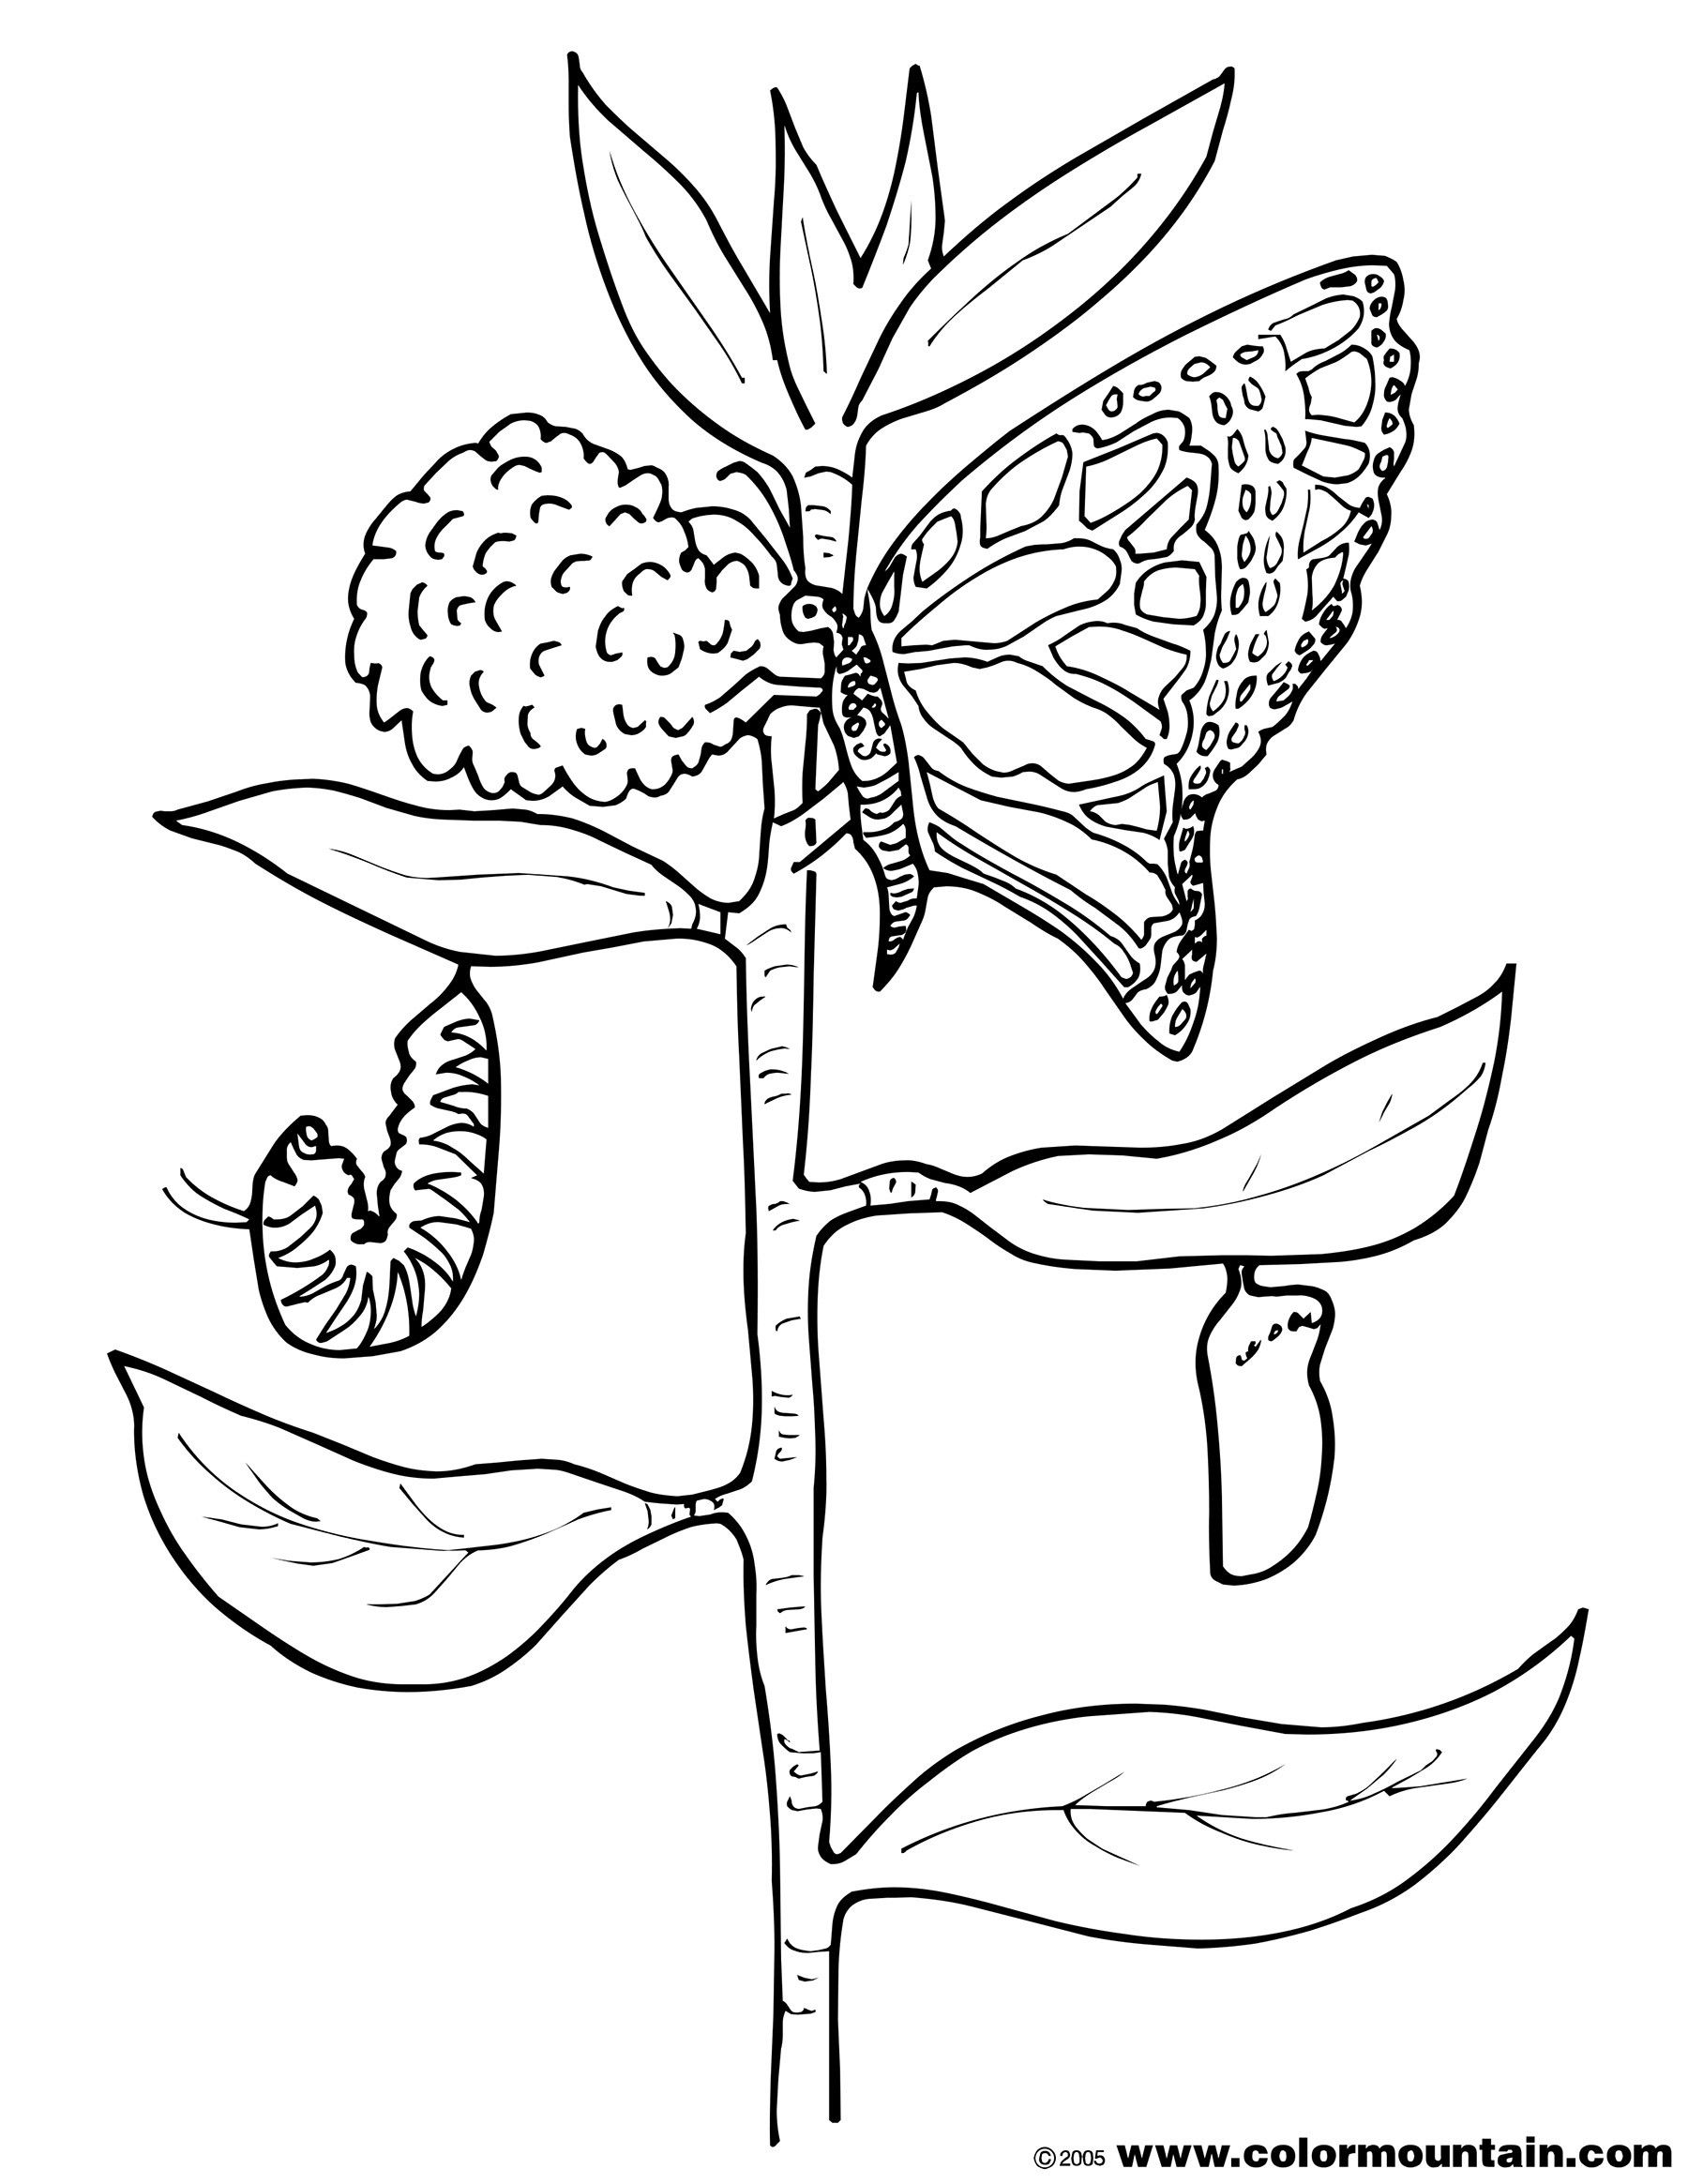 Butterfly Egg Coloring Page Youngandtae Com Butterfly Coloring Page Ladybug Coloring Page Coloring Pages [ 2329 x 1800 Pixel ]